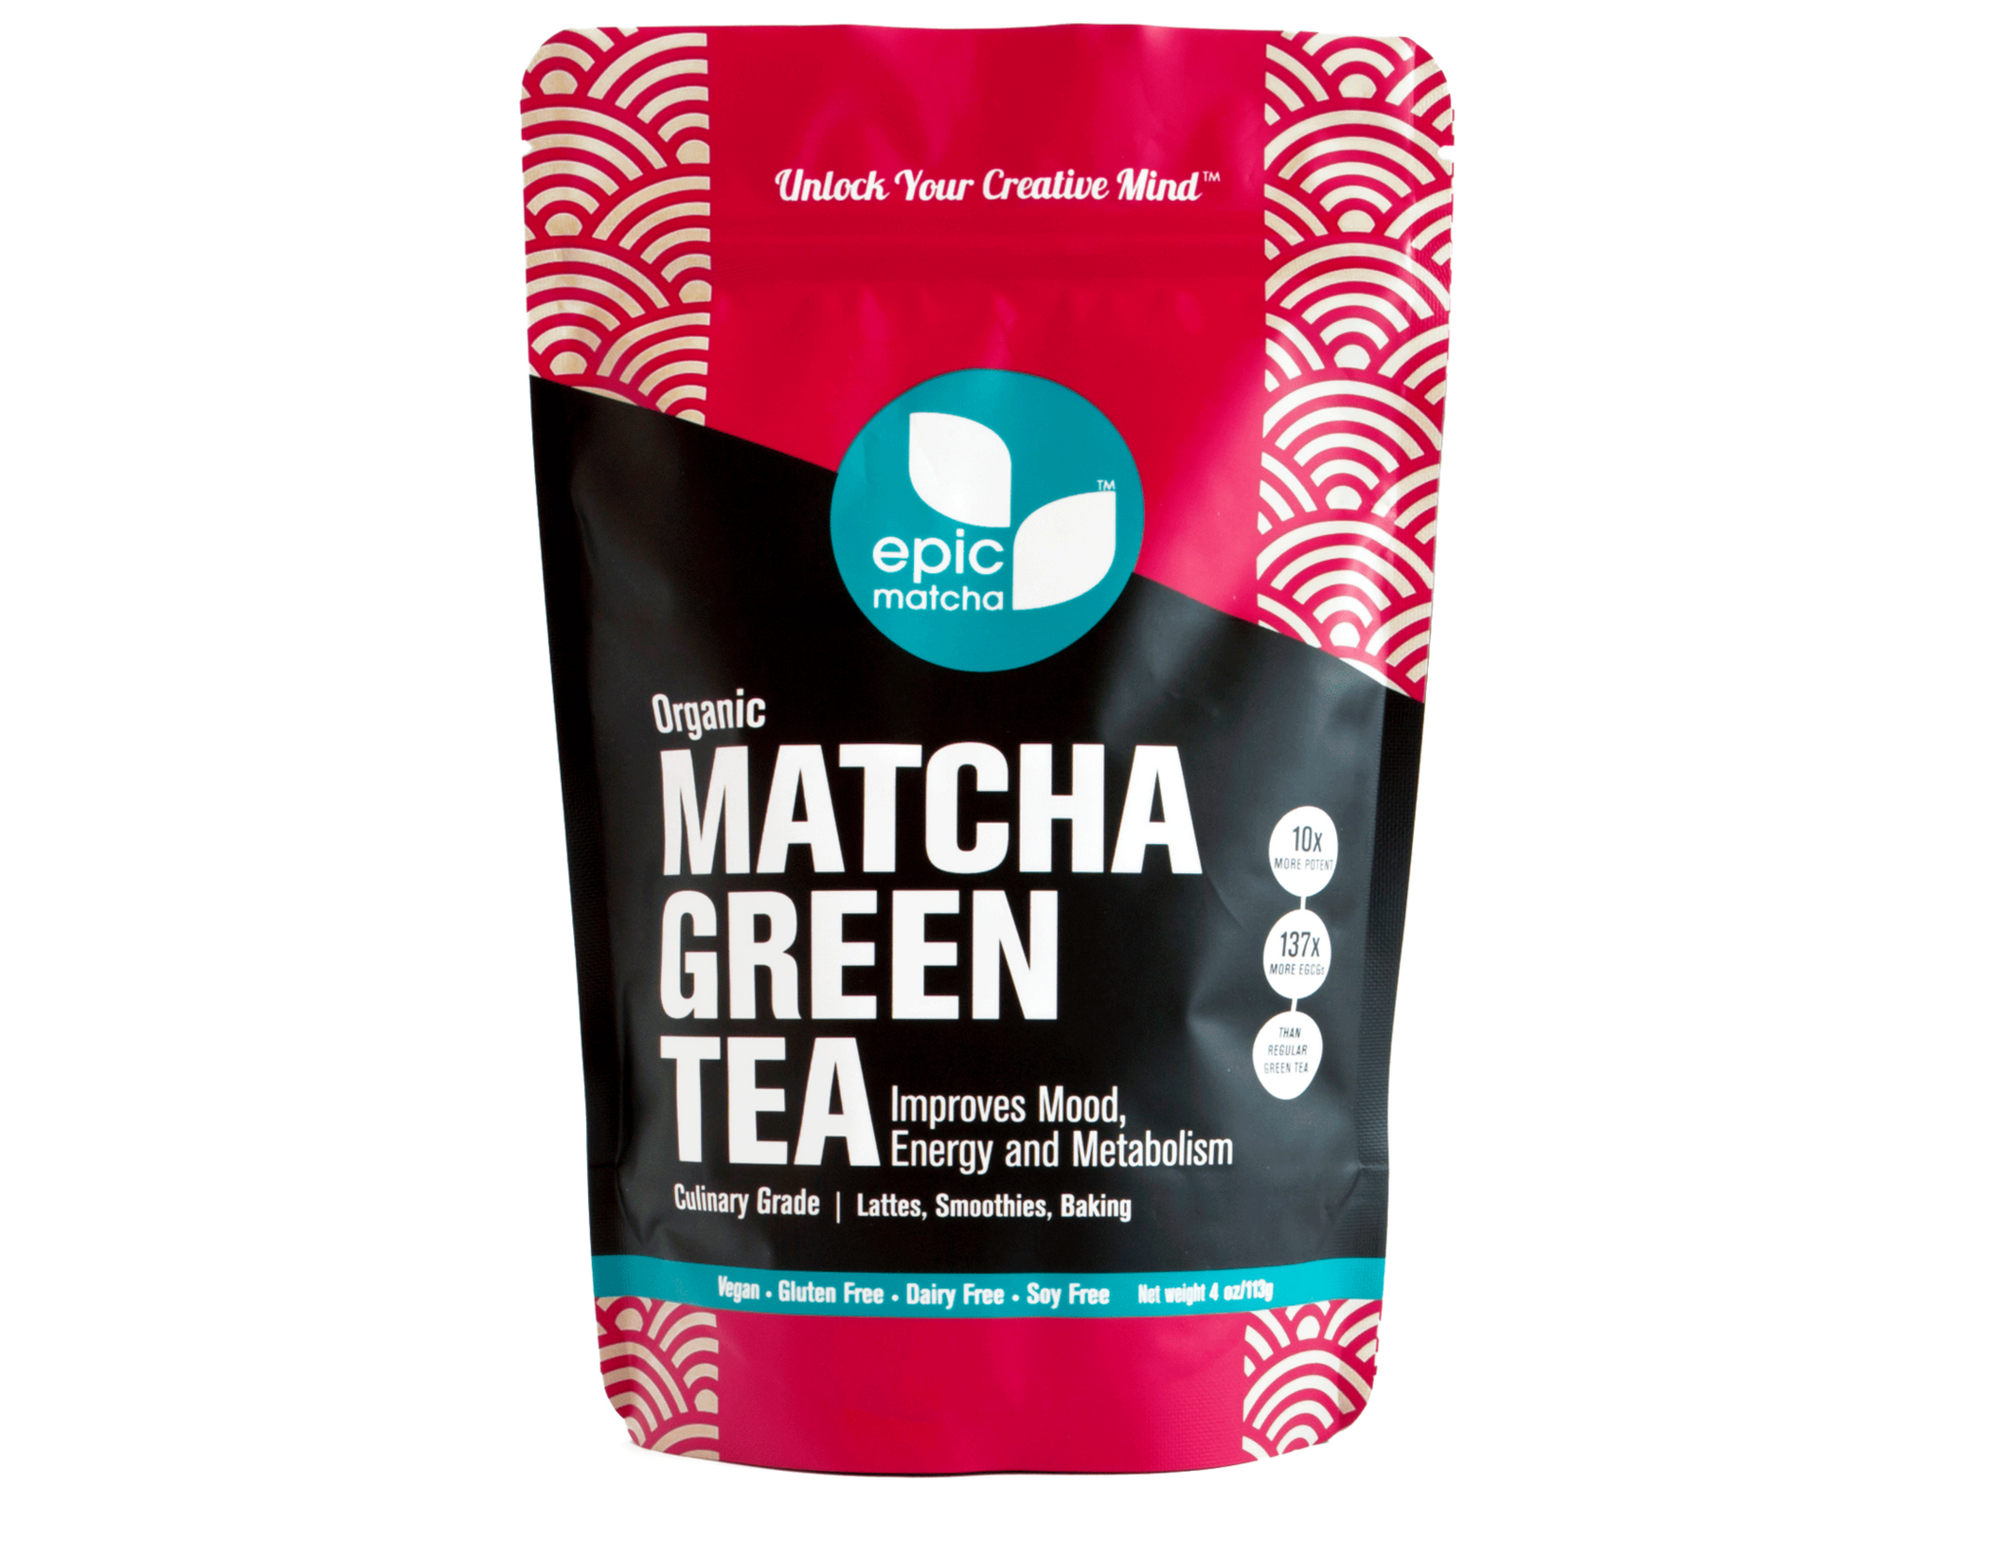 Culinary Grade Matcha from Japan (4 oz / 48 servings)